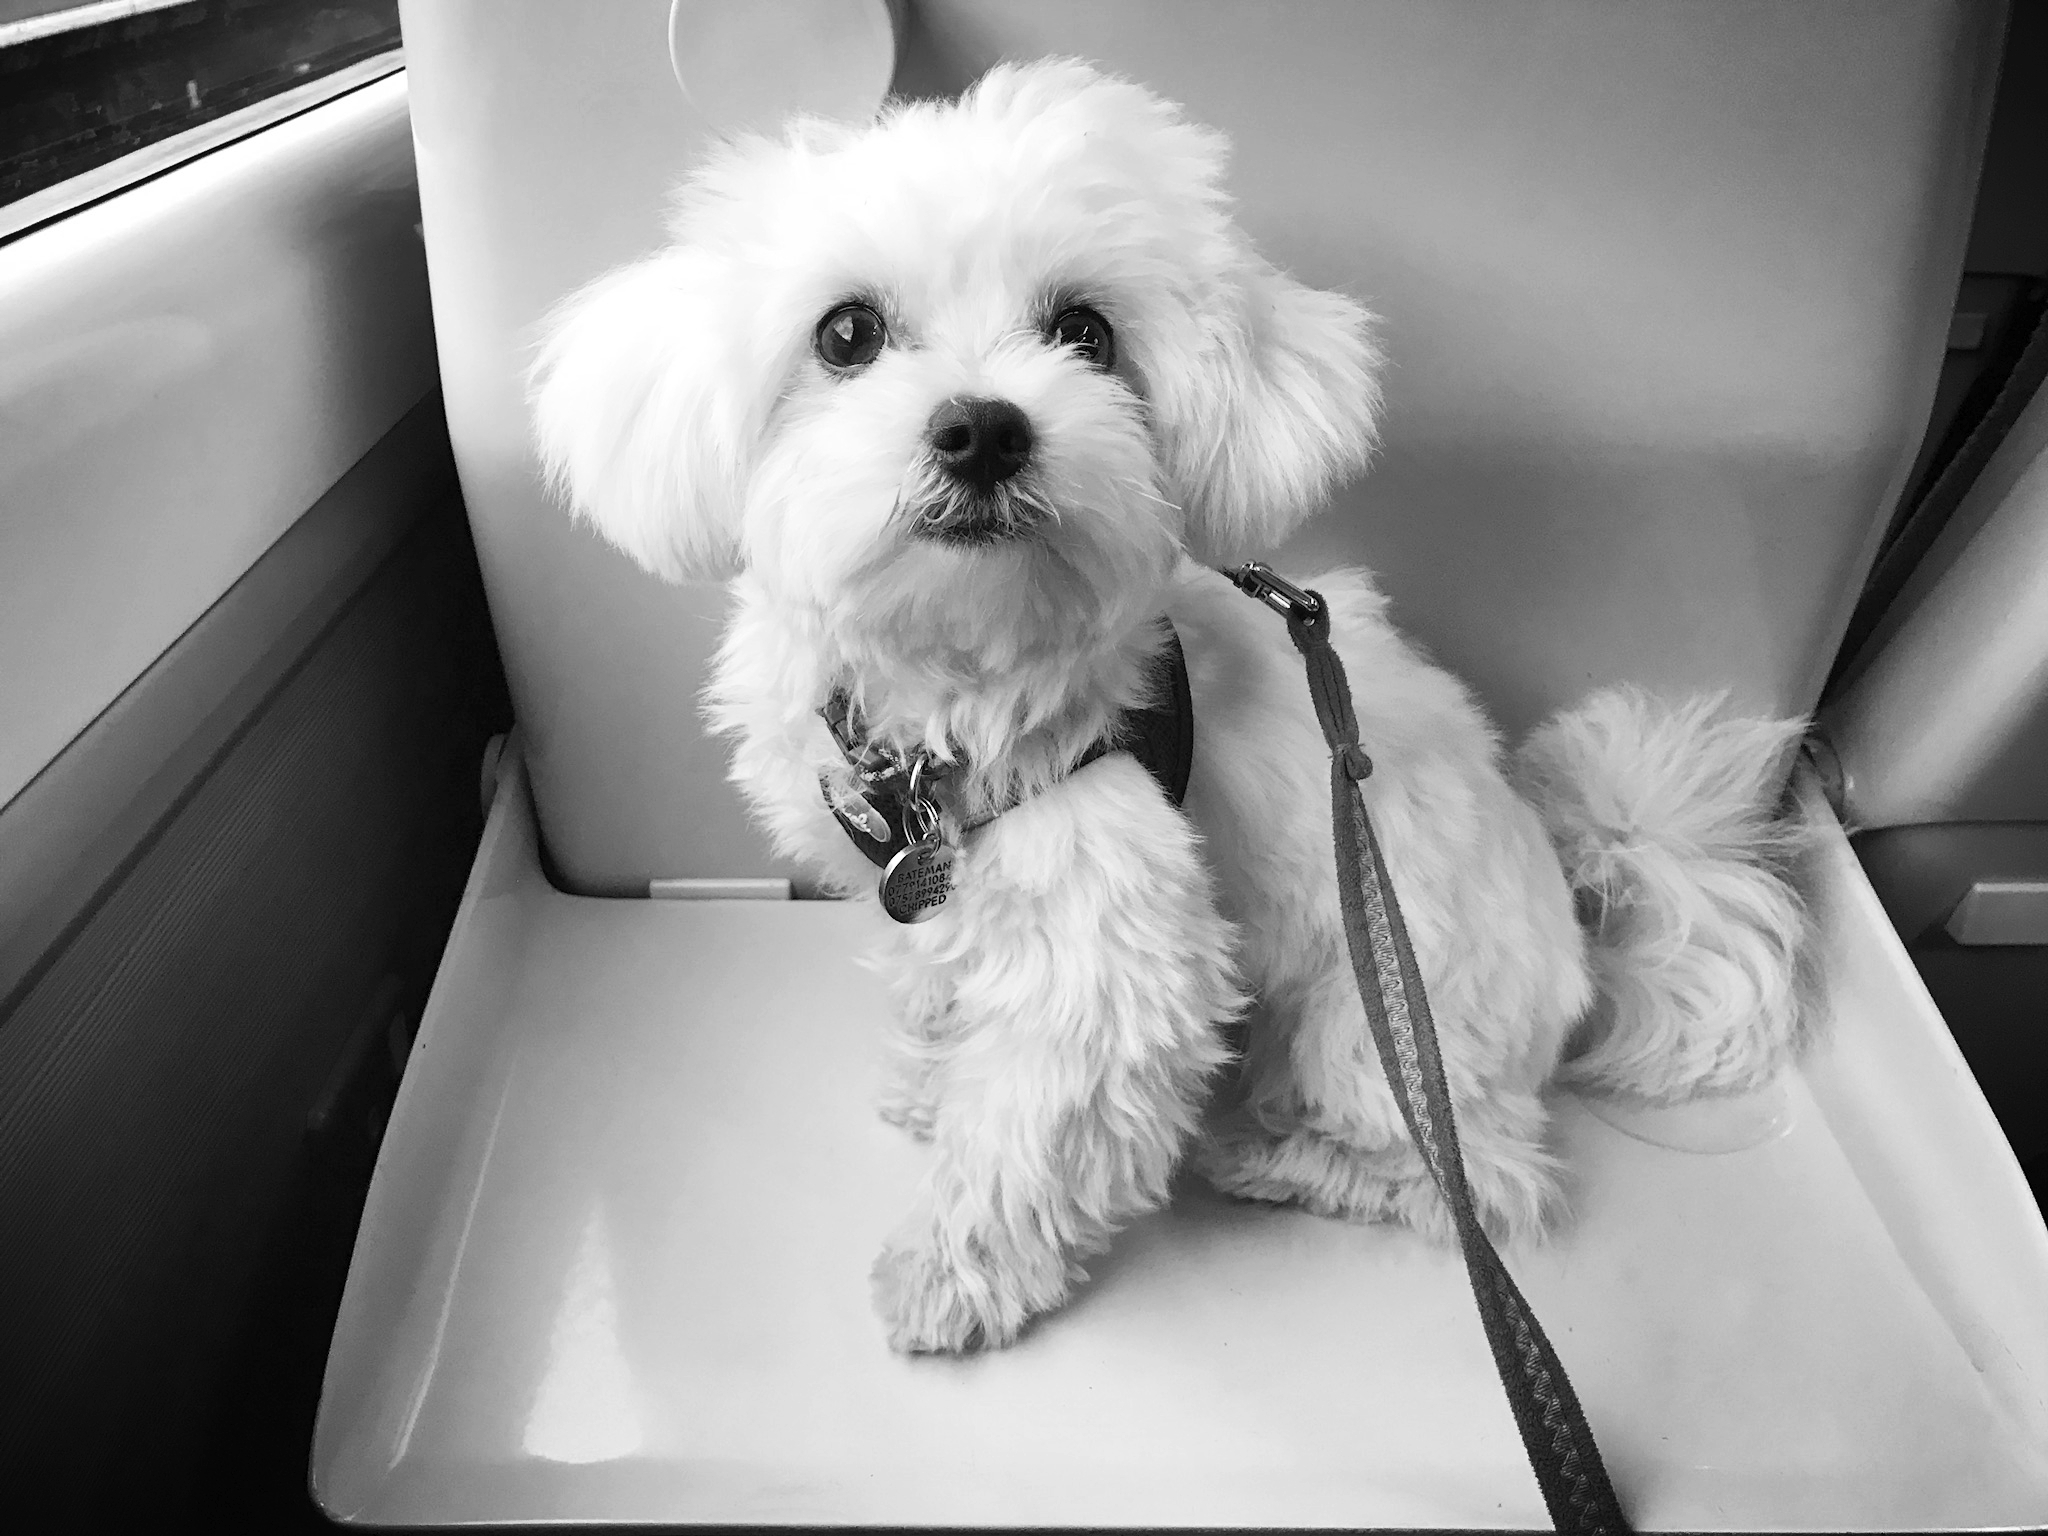 Casper on the train | Credit: Talita Bateman